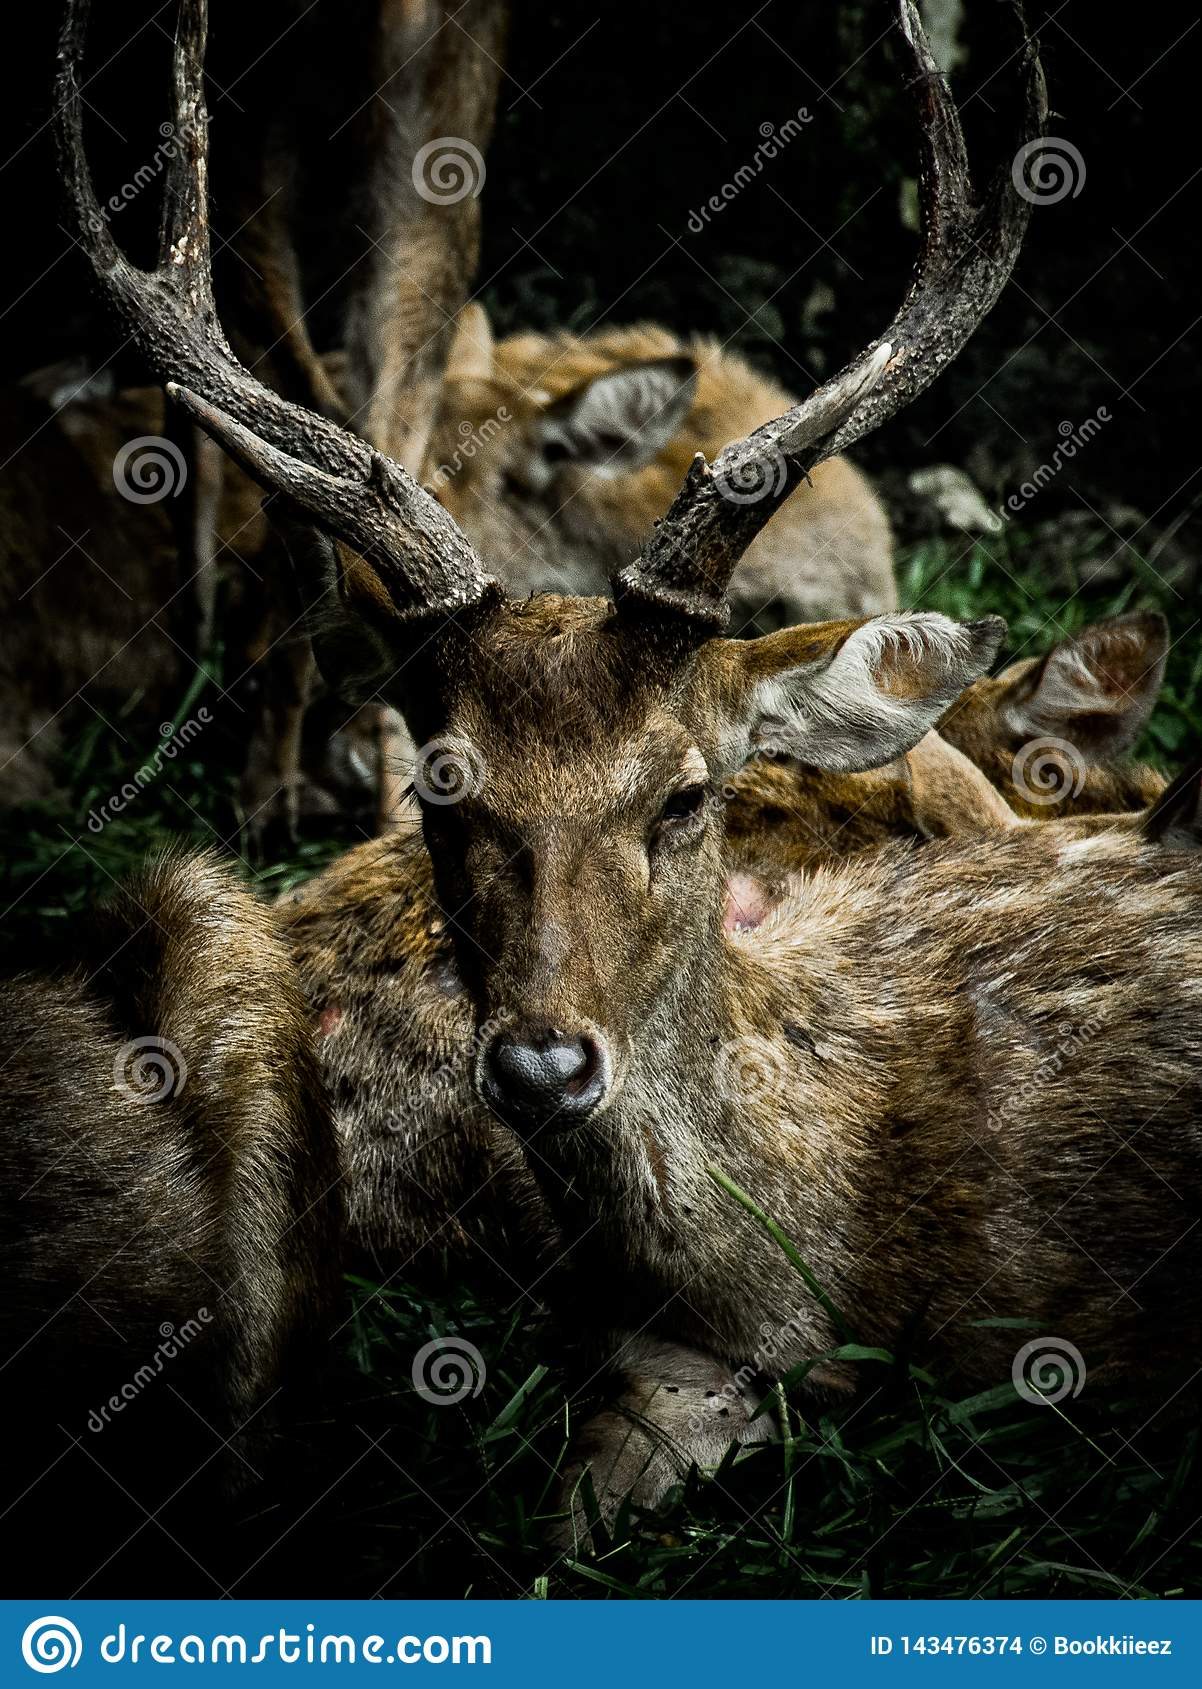 Deers with beautiful horns with dark tone.